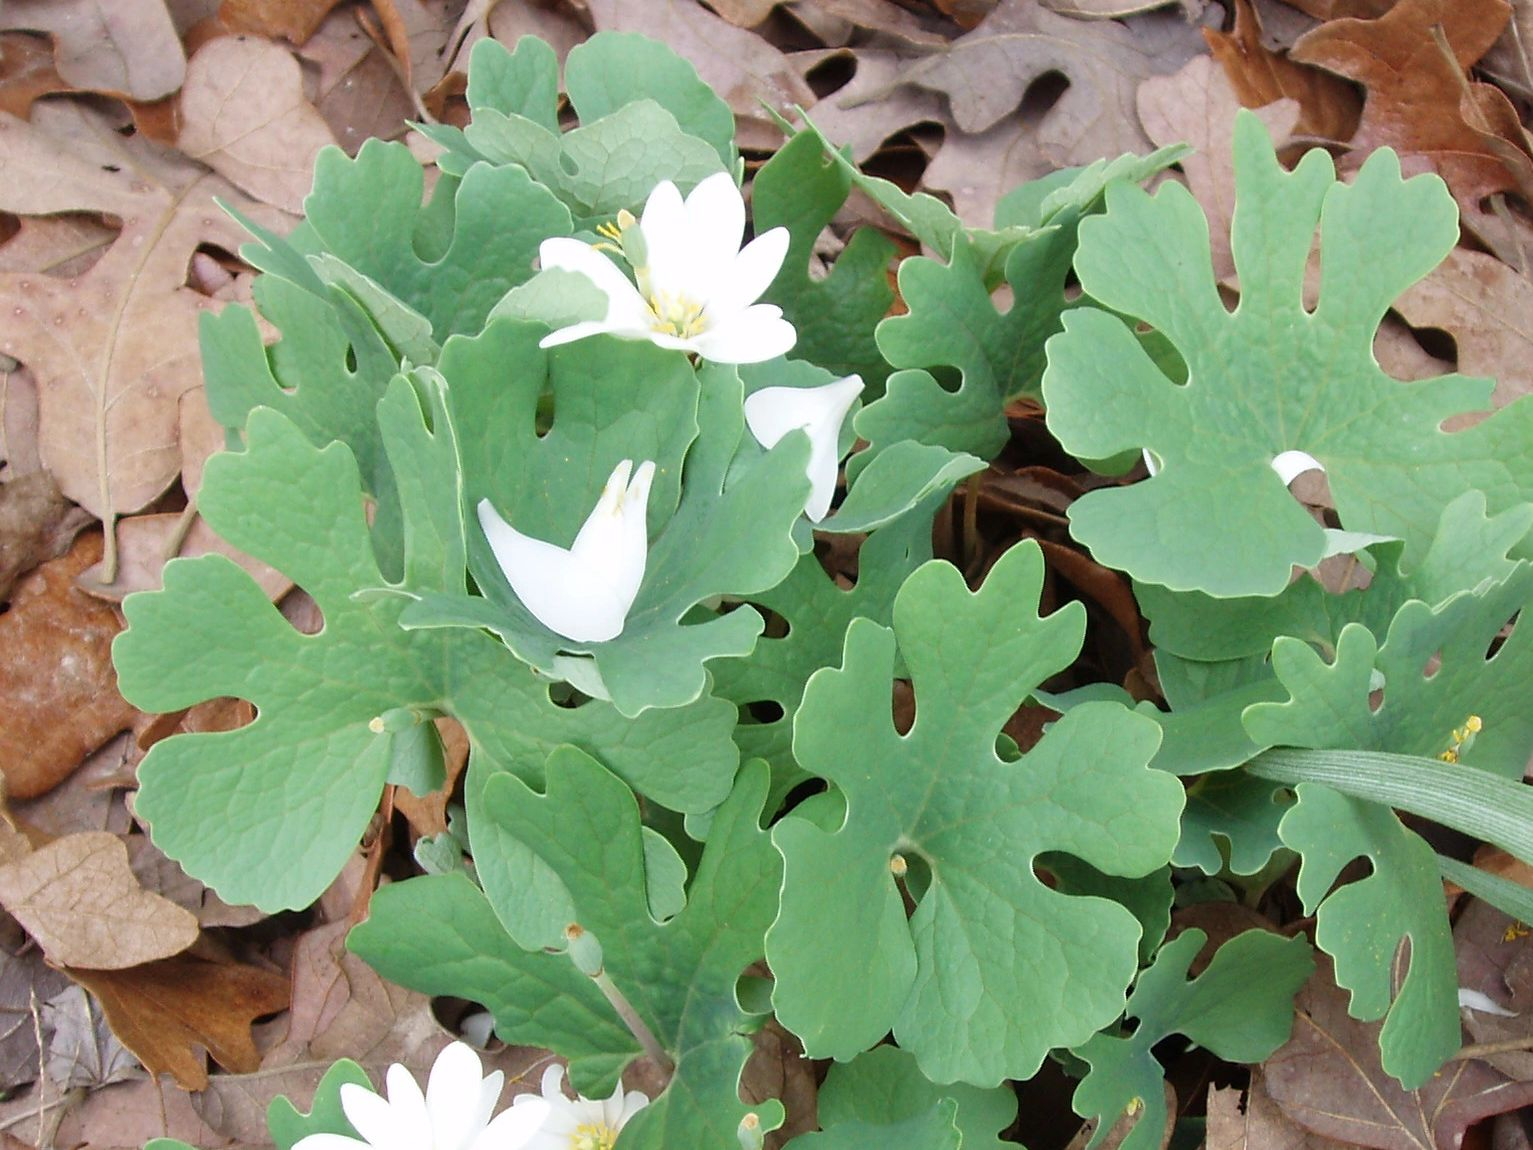 "{""blocks"":[{""key"":""e9pq8"",""text"":""Sanguinaria canadensis Bloodroot -  potted plants email john@easywildflowers.com "",""type"":""unstyled"",""depth"":0,""inlineStyleRanges"":[],""entityRanges"":[],""data"":{}}],""entityMap"":{}}"